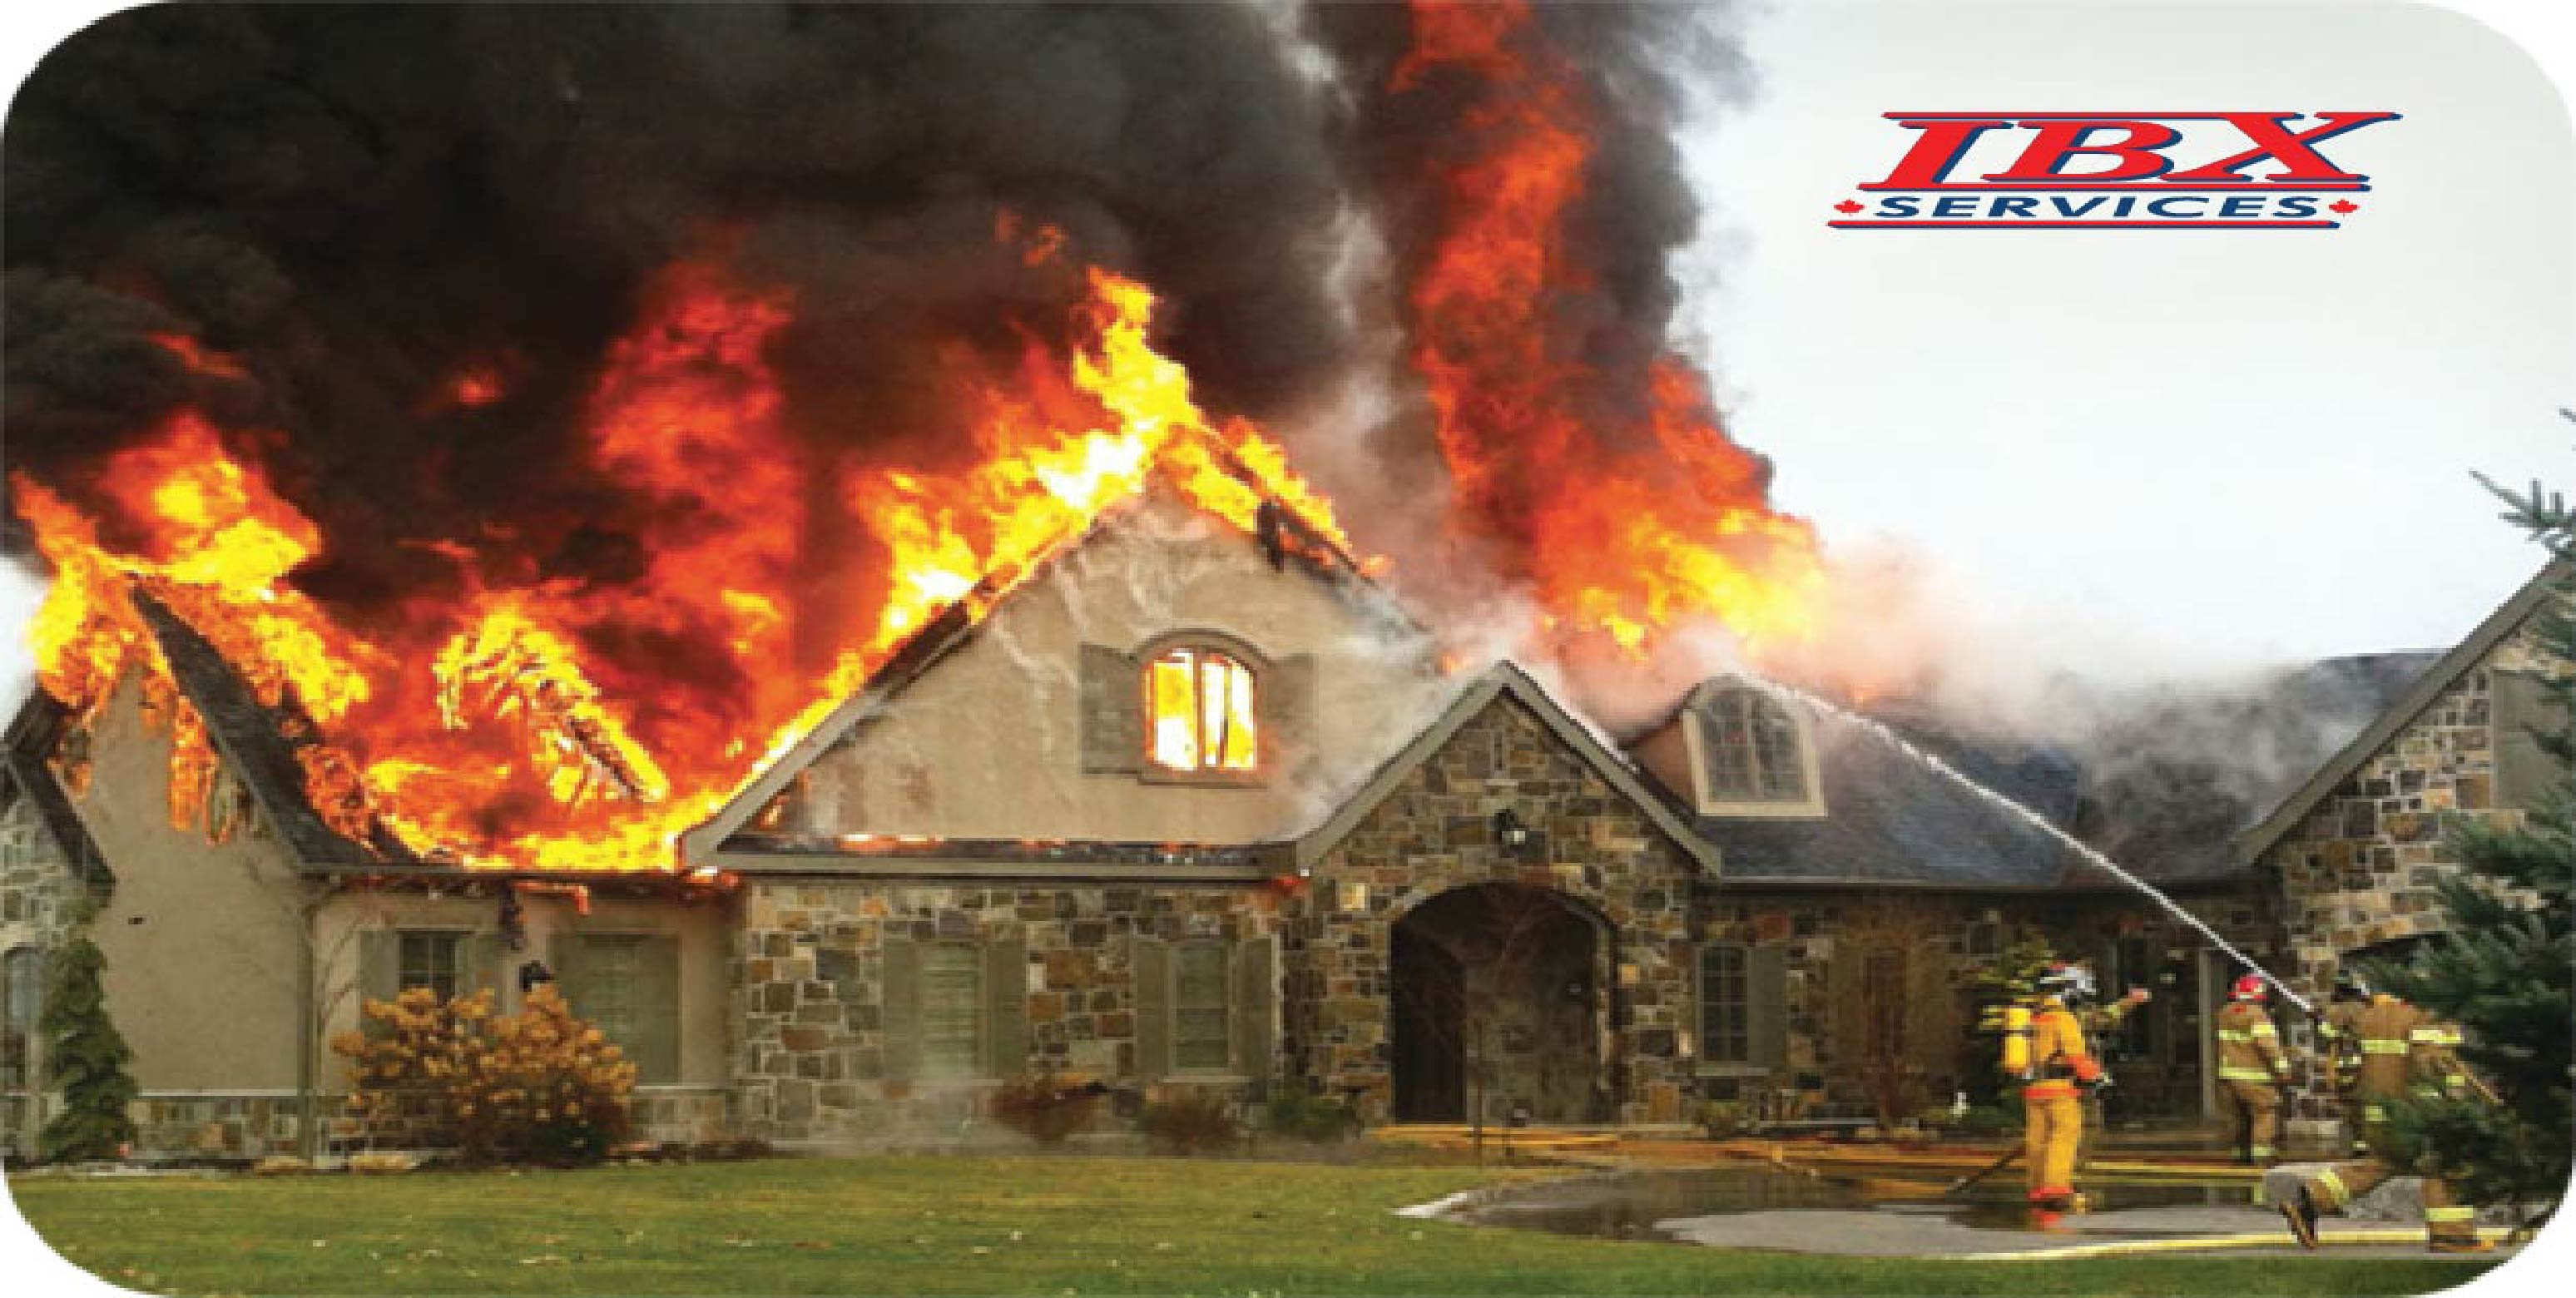 How Long Does Fire Restoration Take?